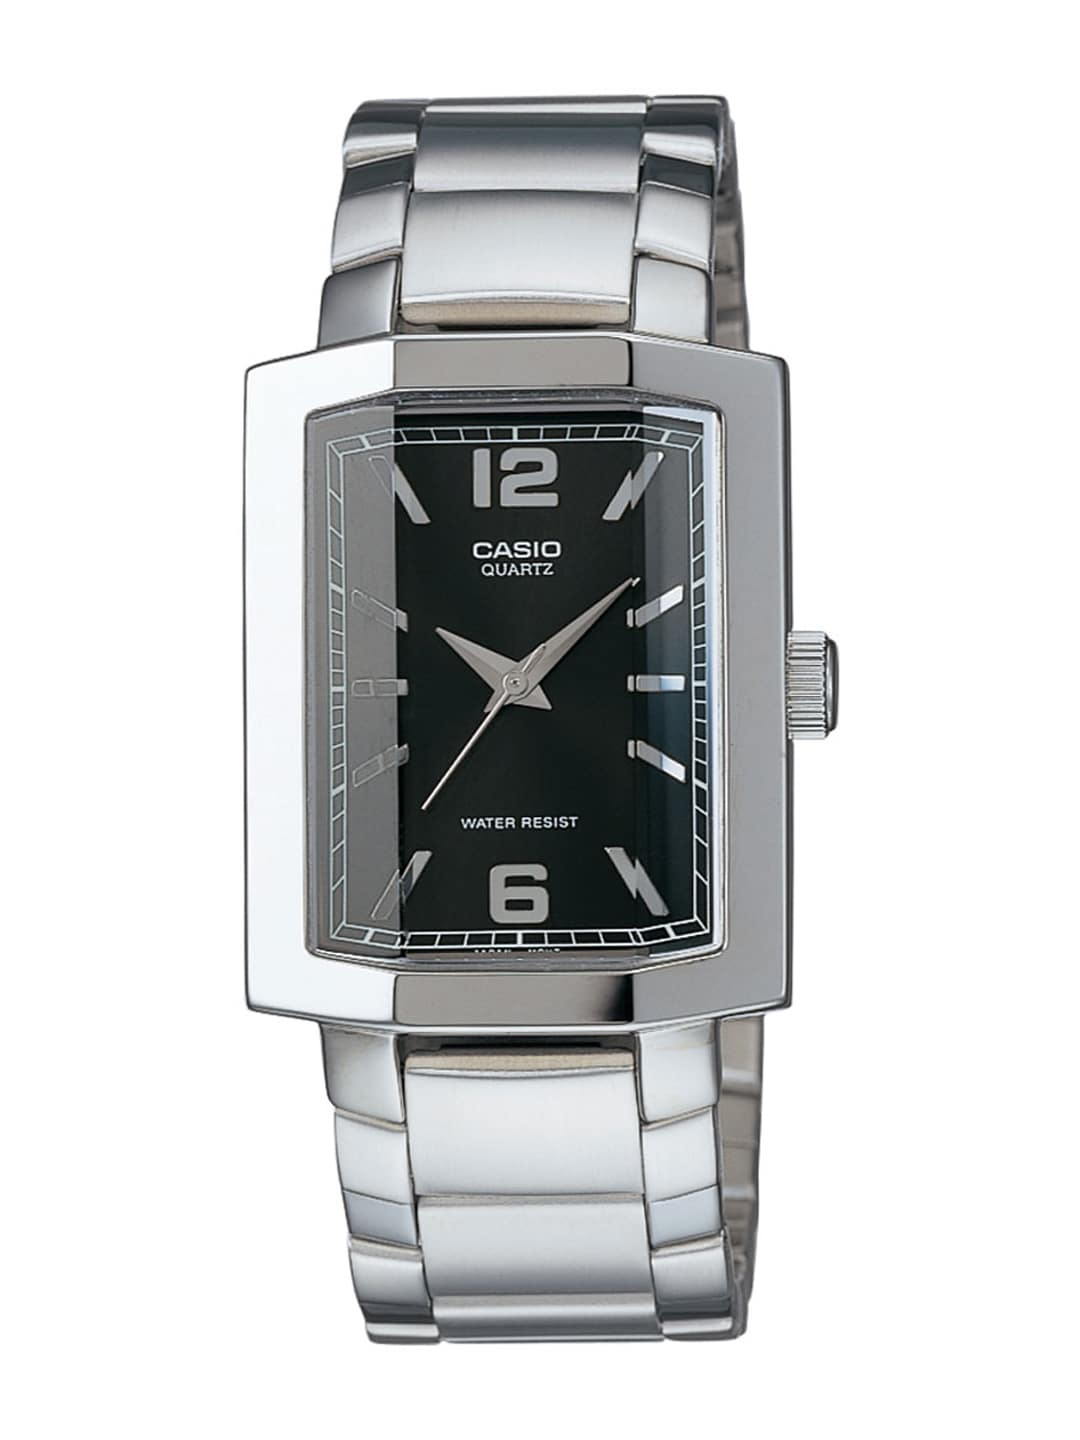 Casio A188 Enticer Men's Men's Watch image.